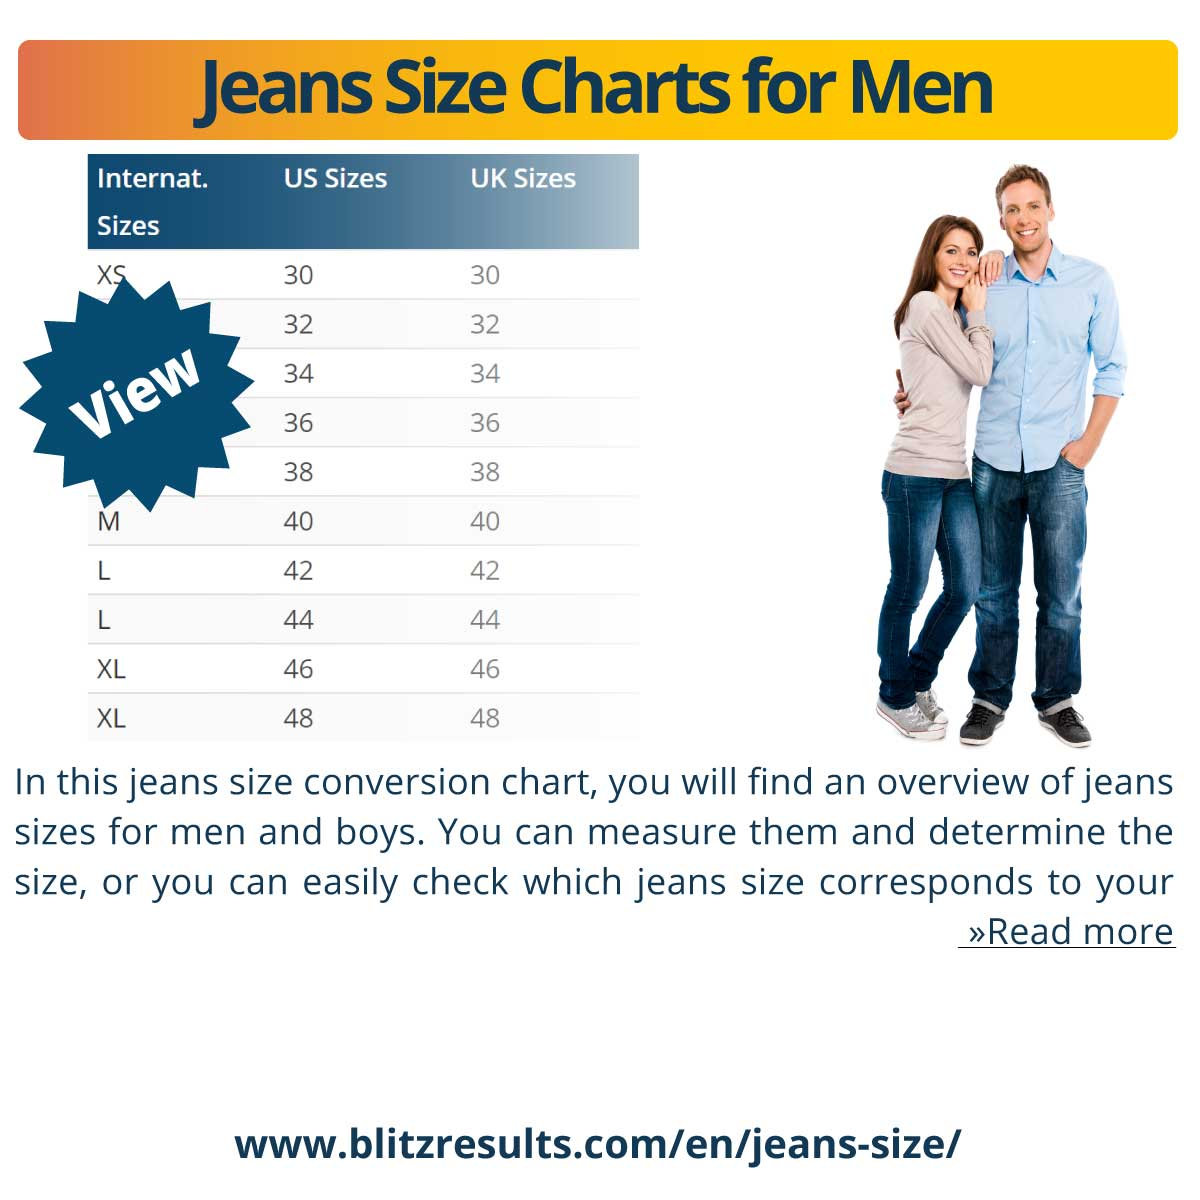 Jeans Size Charts for Men